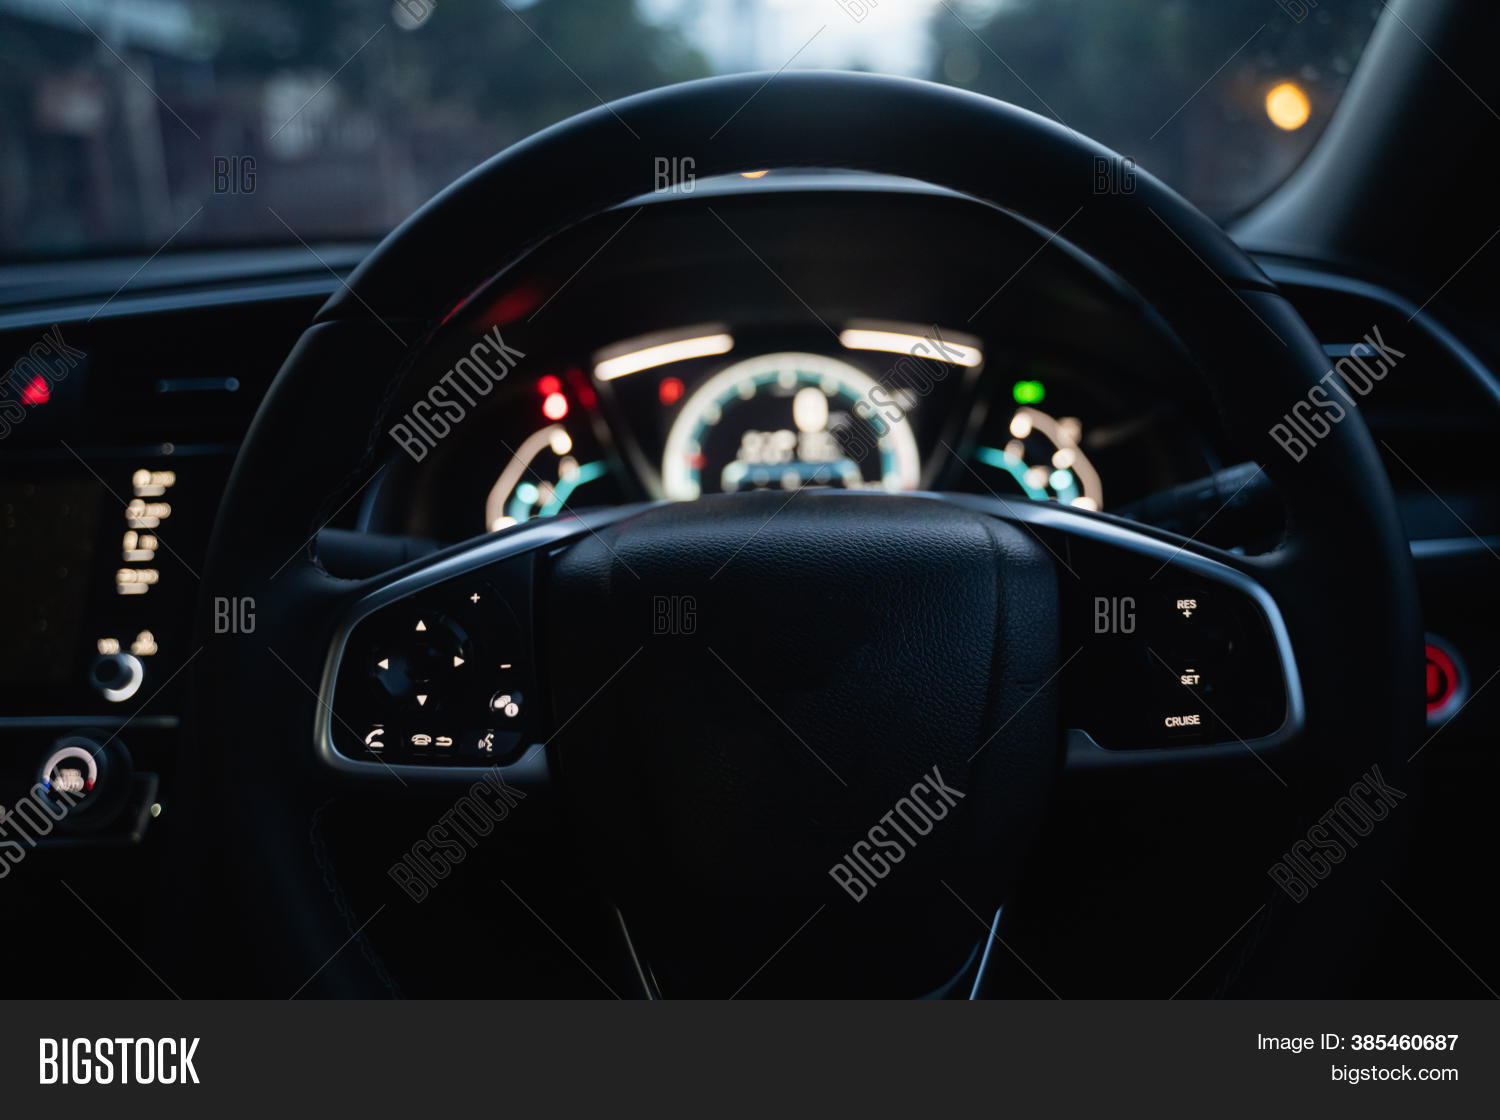 Interior Car Steering Image Photo Free Trial Bigstock